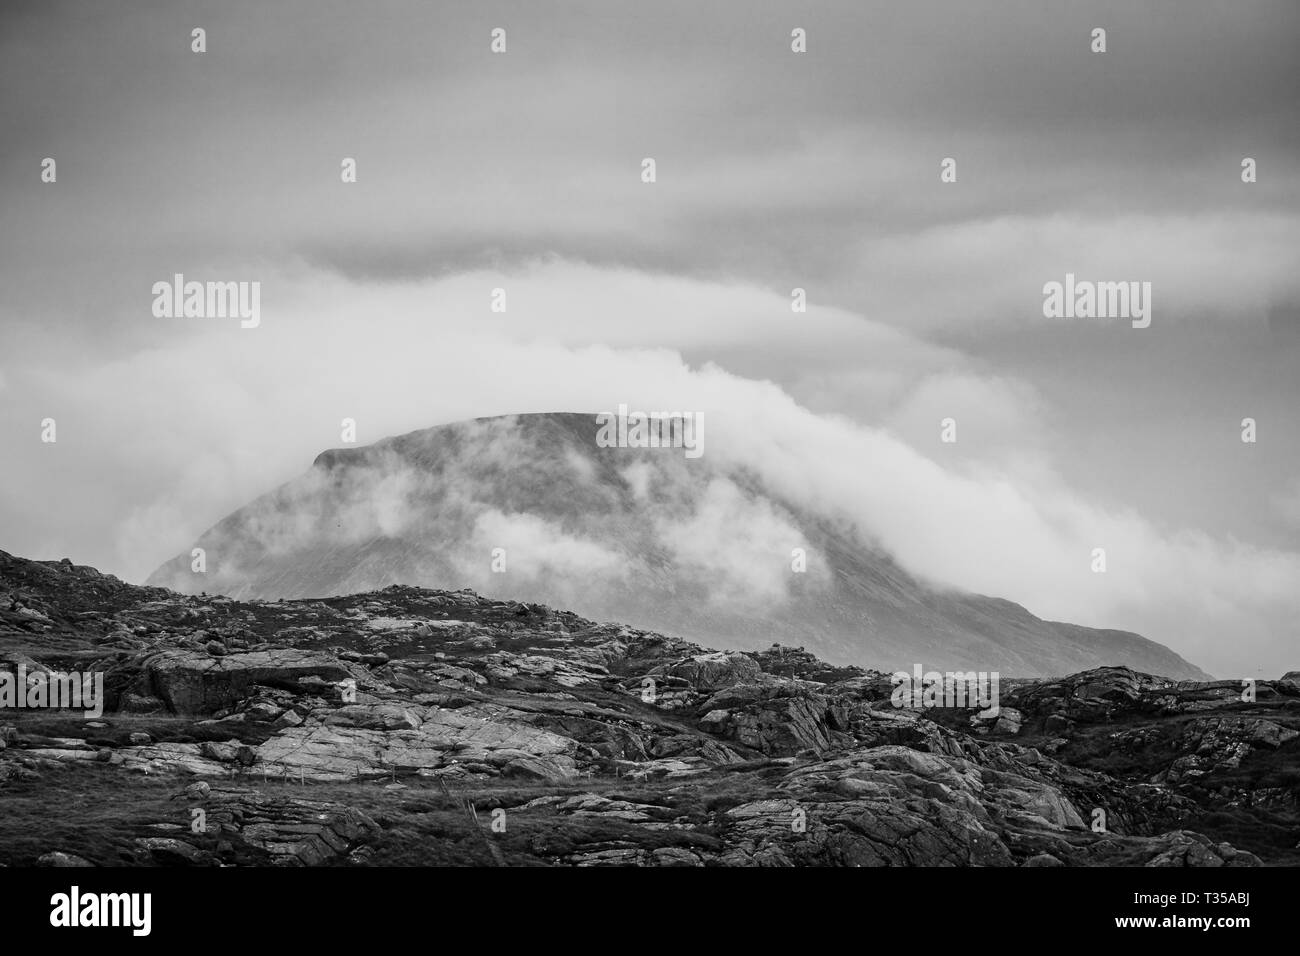 Sheathed in mist and fog, the mountain Ben Arkle, or just Arkle, is seen here as viewed from Blairmore, Sutherland, northern Scotland. - Stock Image